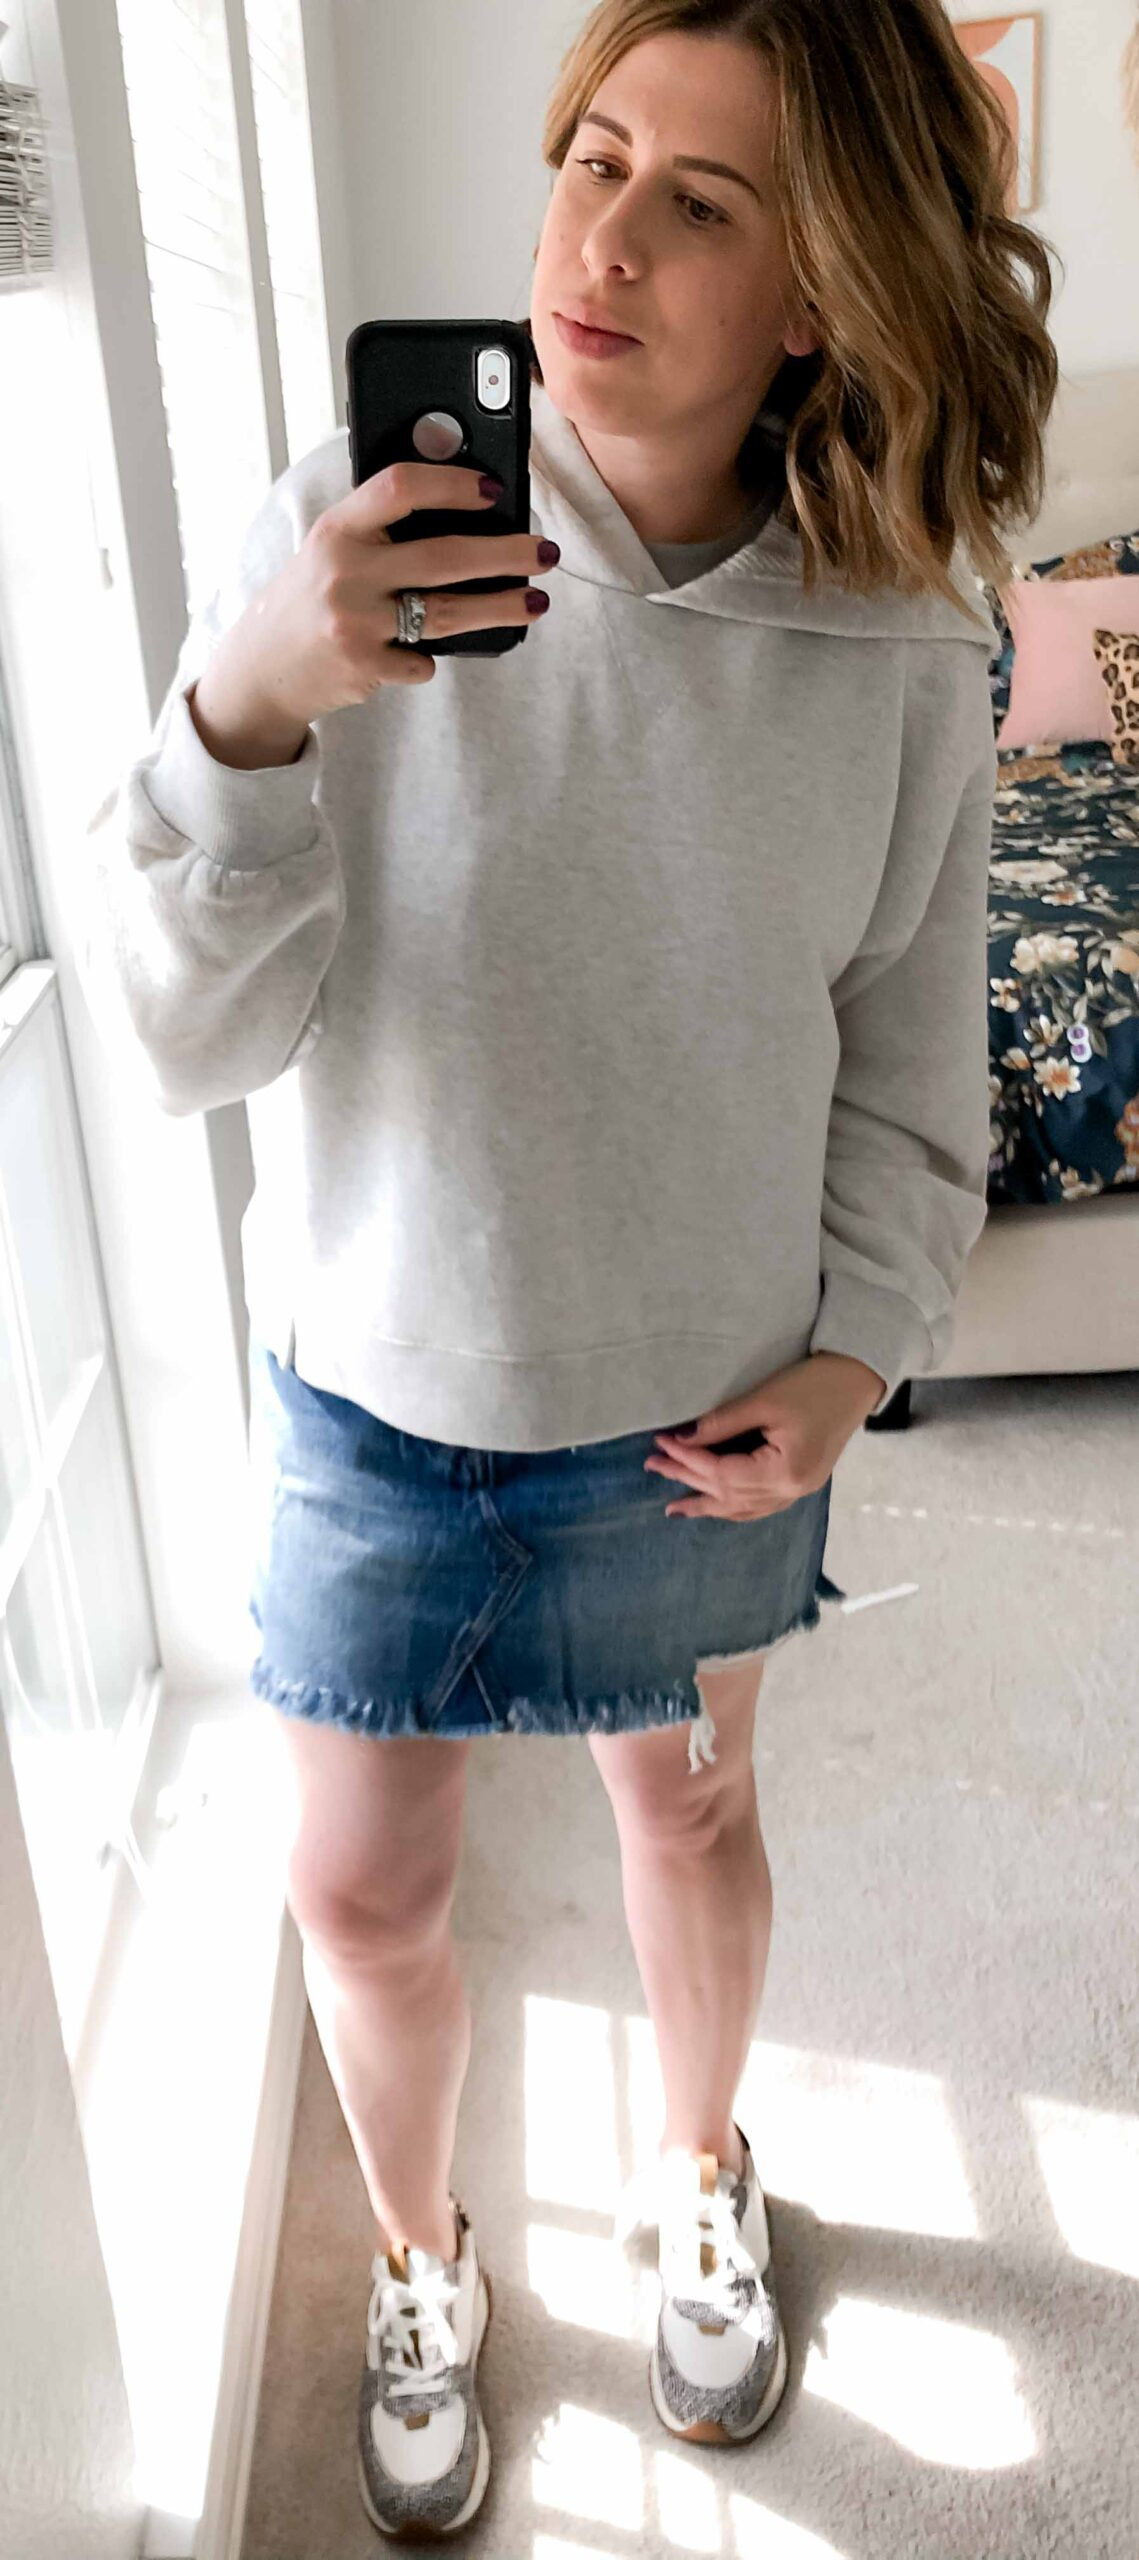 Madewell's spring arrivals are literally too amazing to resist. Denim skirts, paperbag pants, cute sneaks...Here are 5 outfits I'm loving...